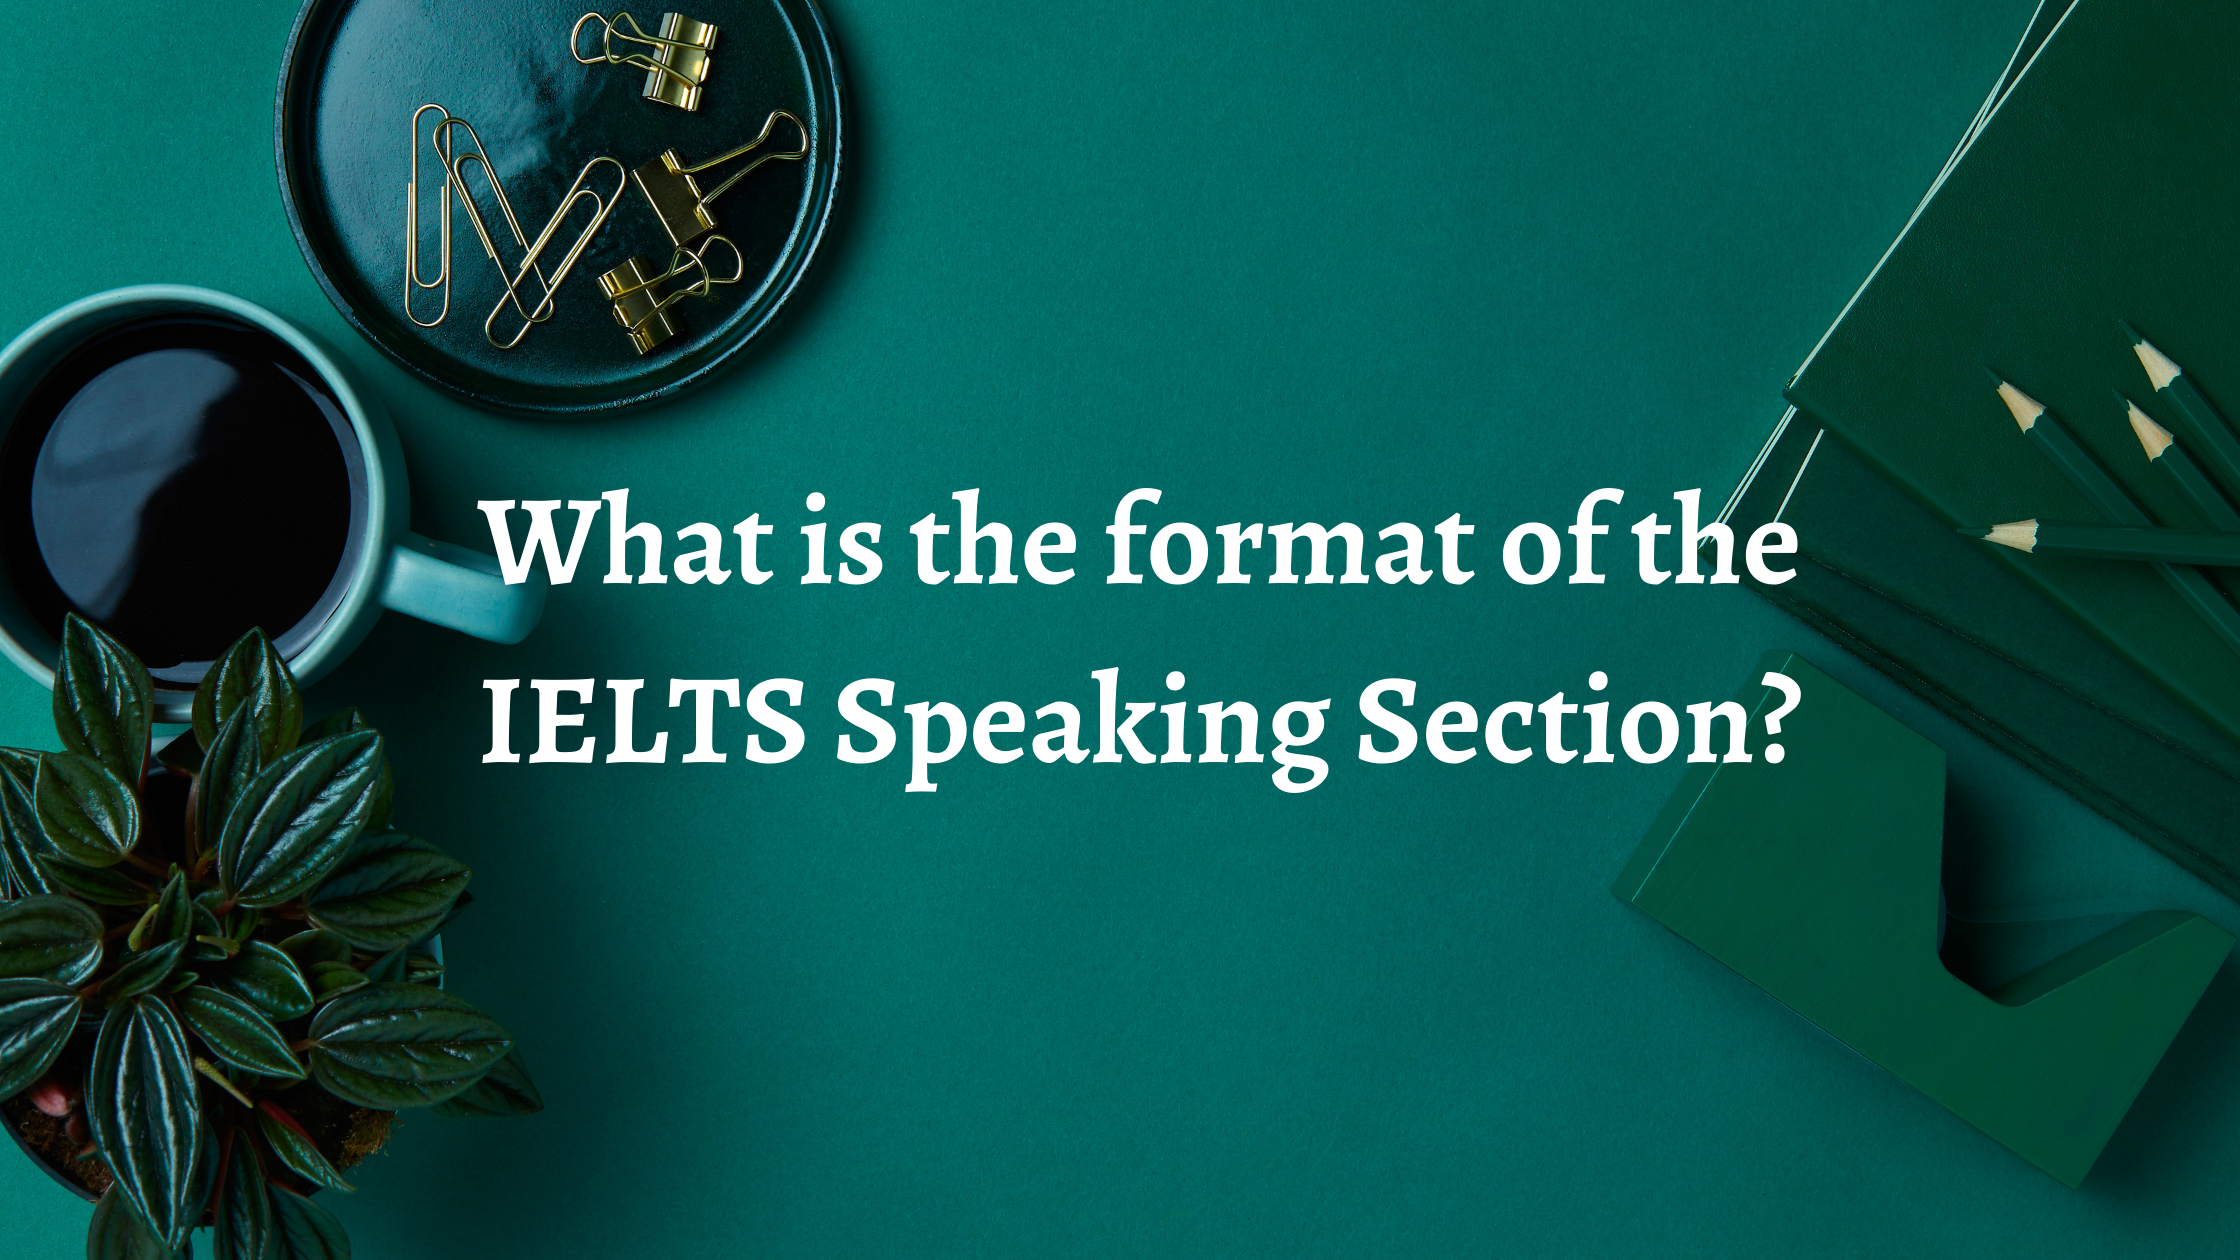 What is the format of the IELTS Speaking Section?